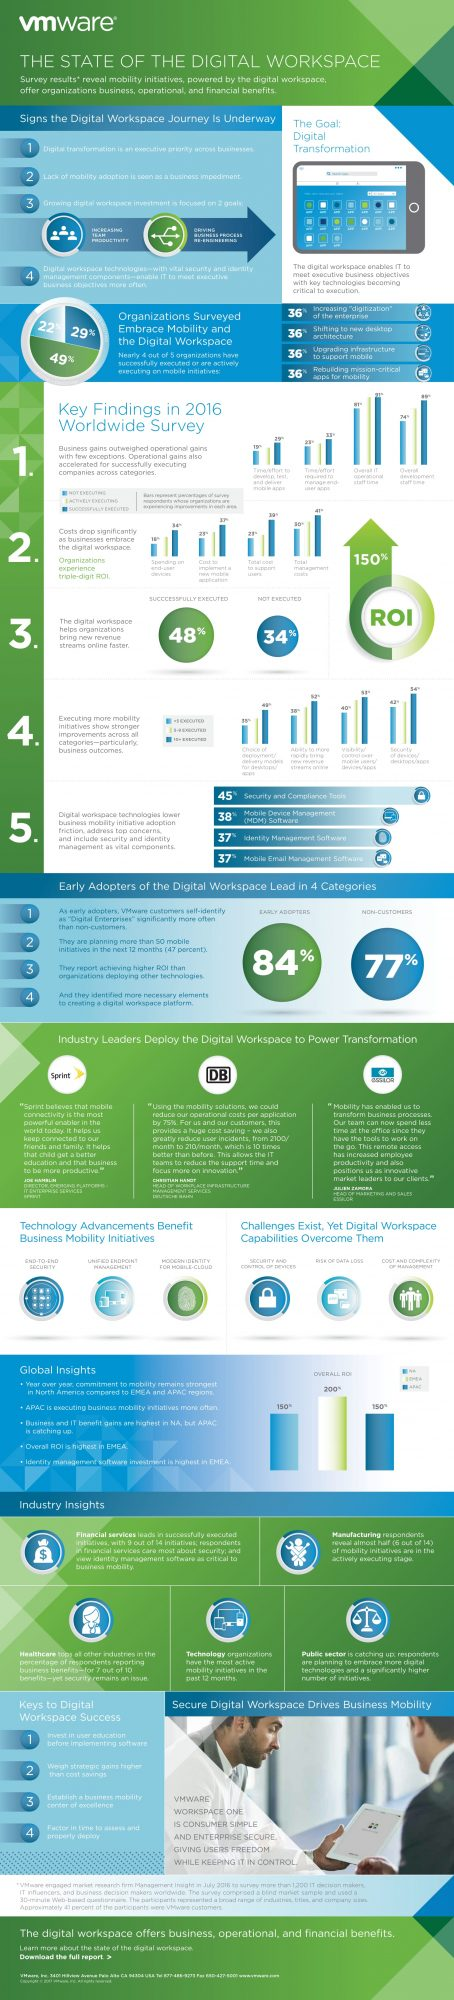 VMWare-2016-state-of-the-digital-workspace-infographgic